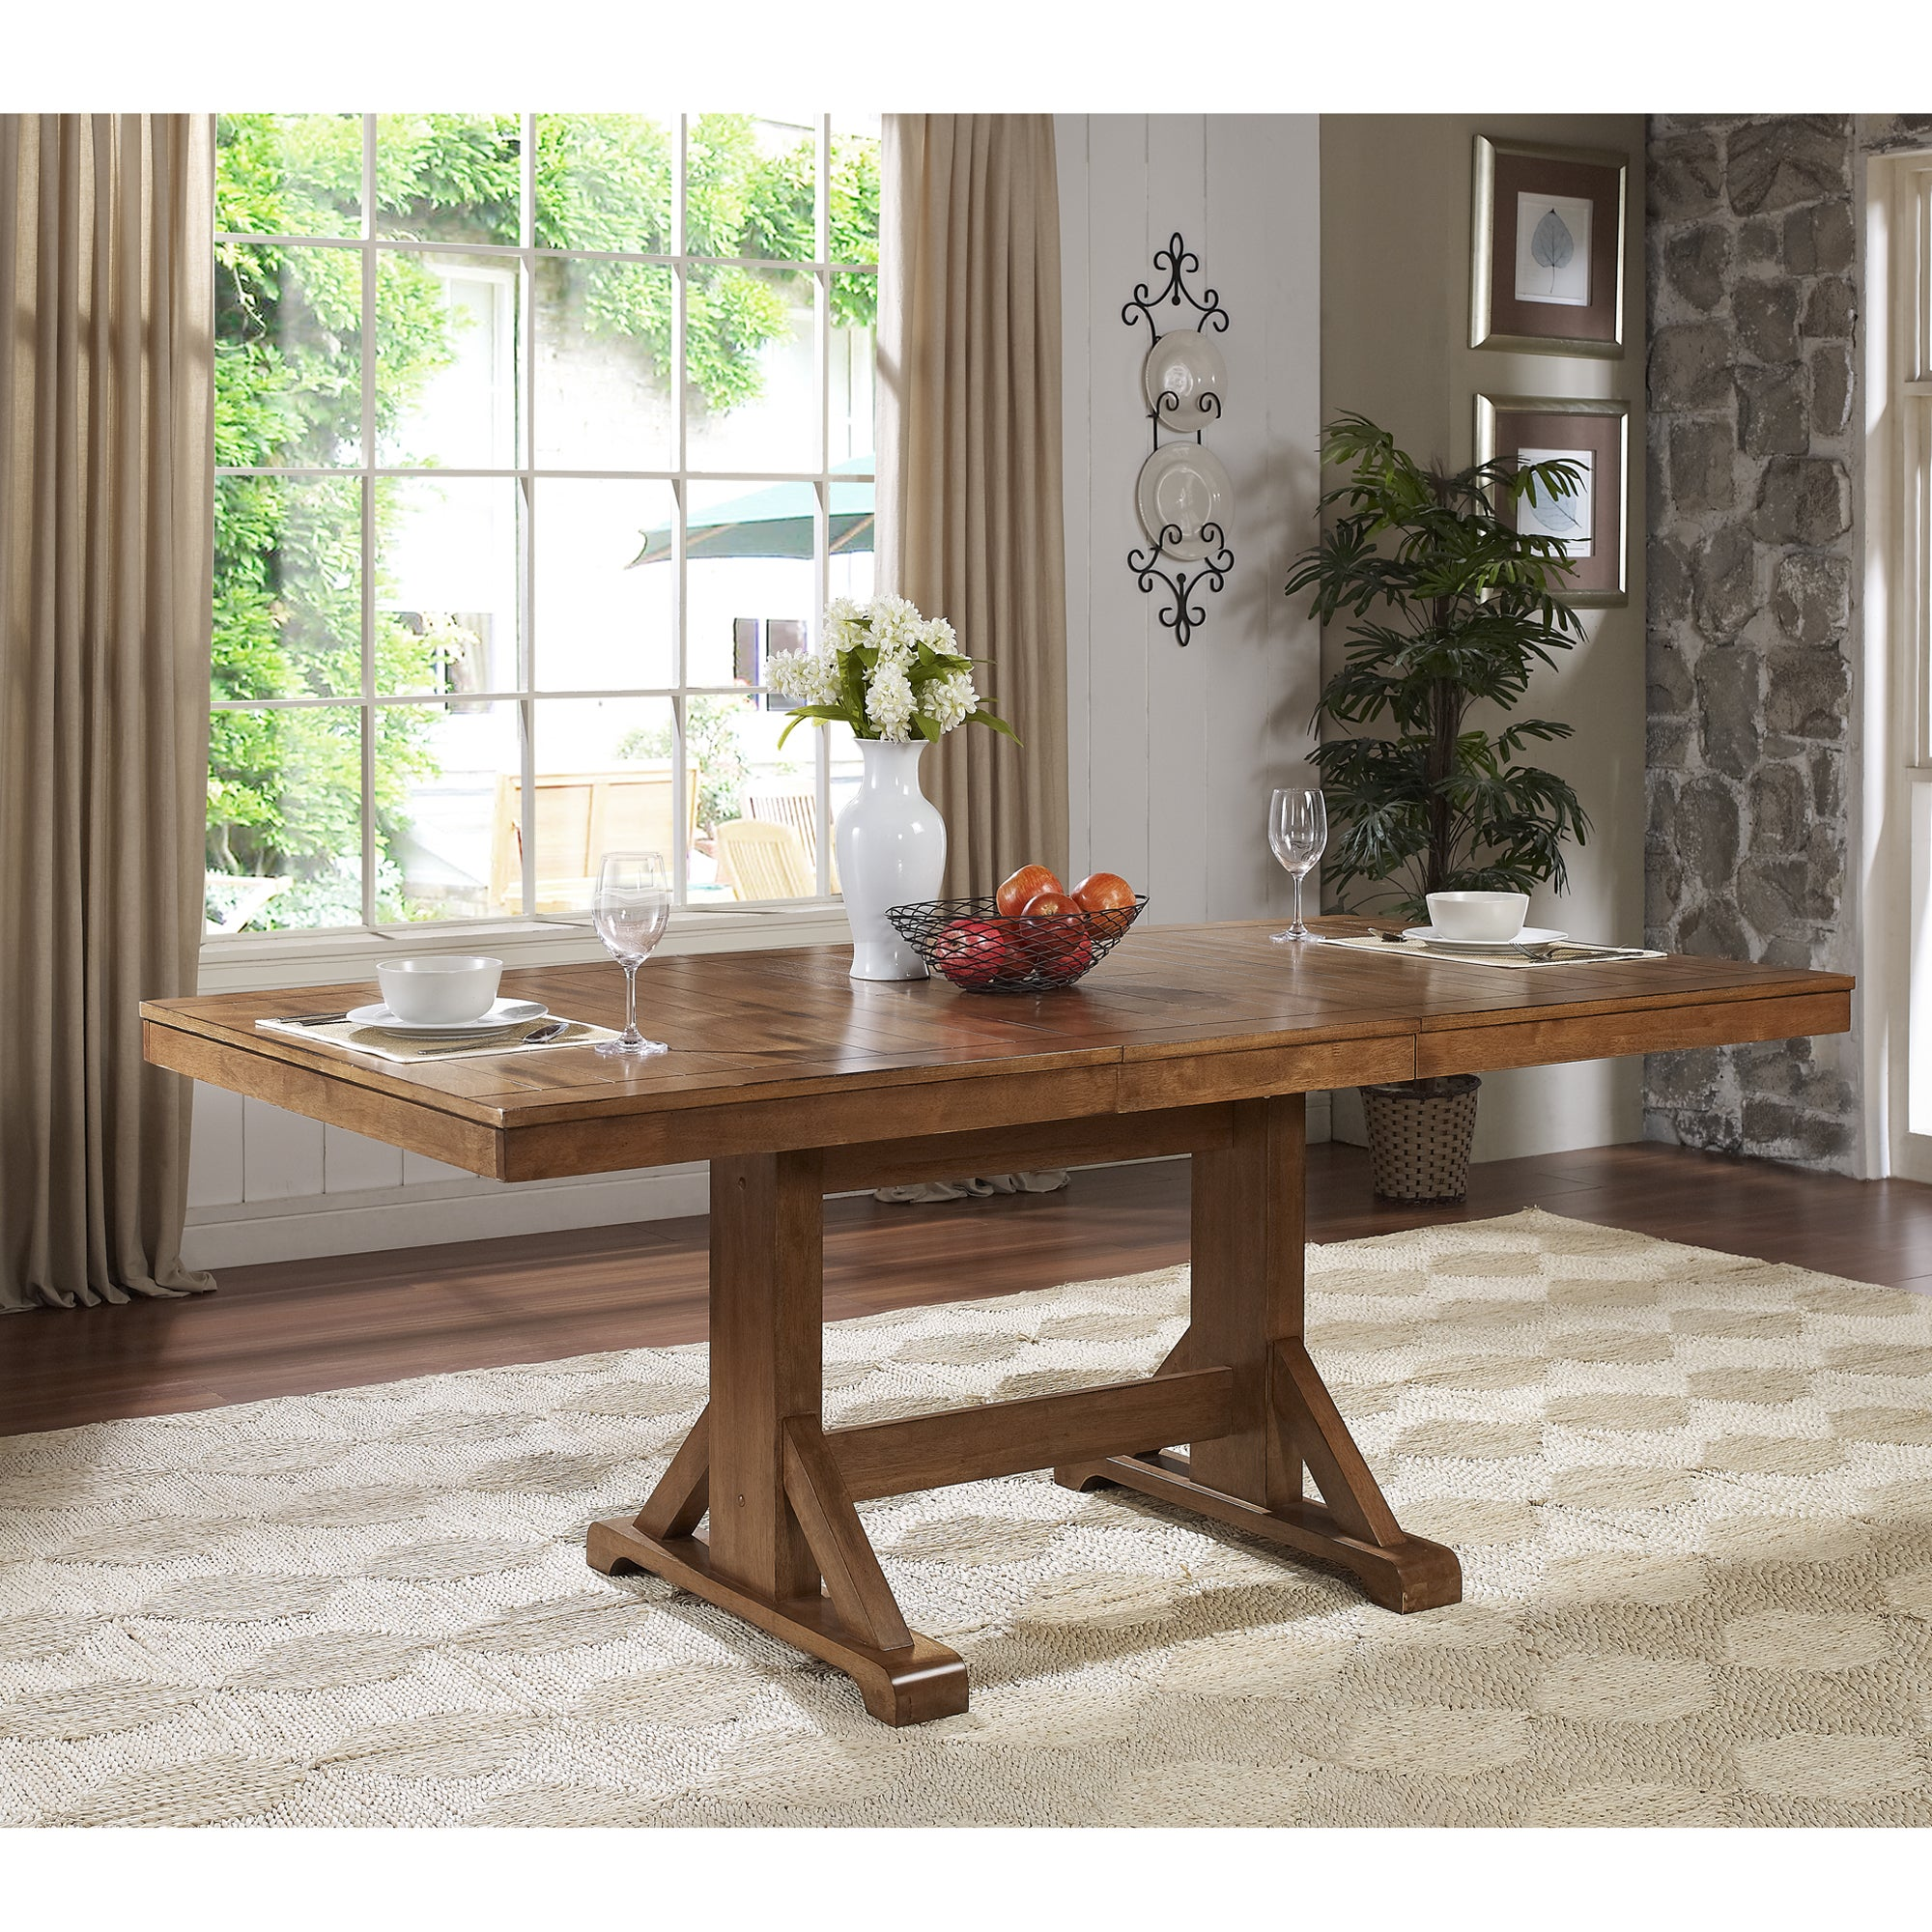 Shop Priage By Zinus Farmhouse Wood Dining Table: Shop Farmhouse Chic Antique Brown Wood Dining Table